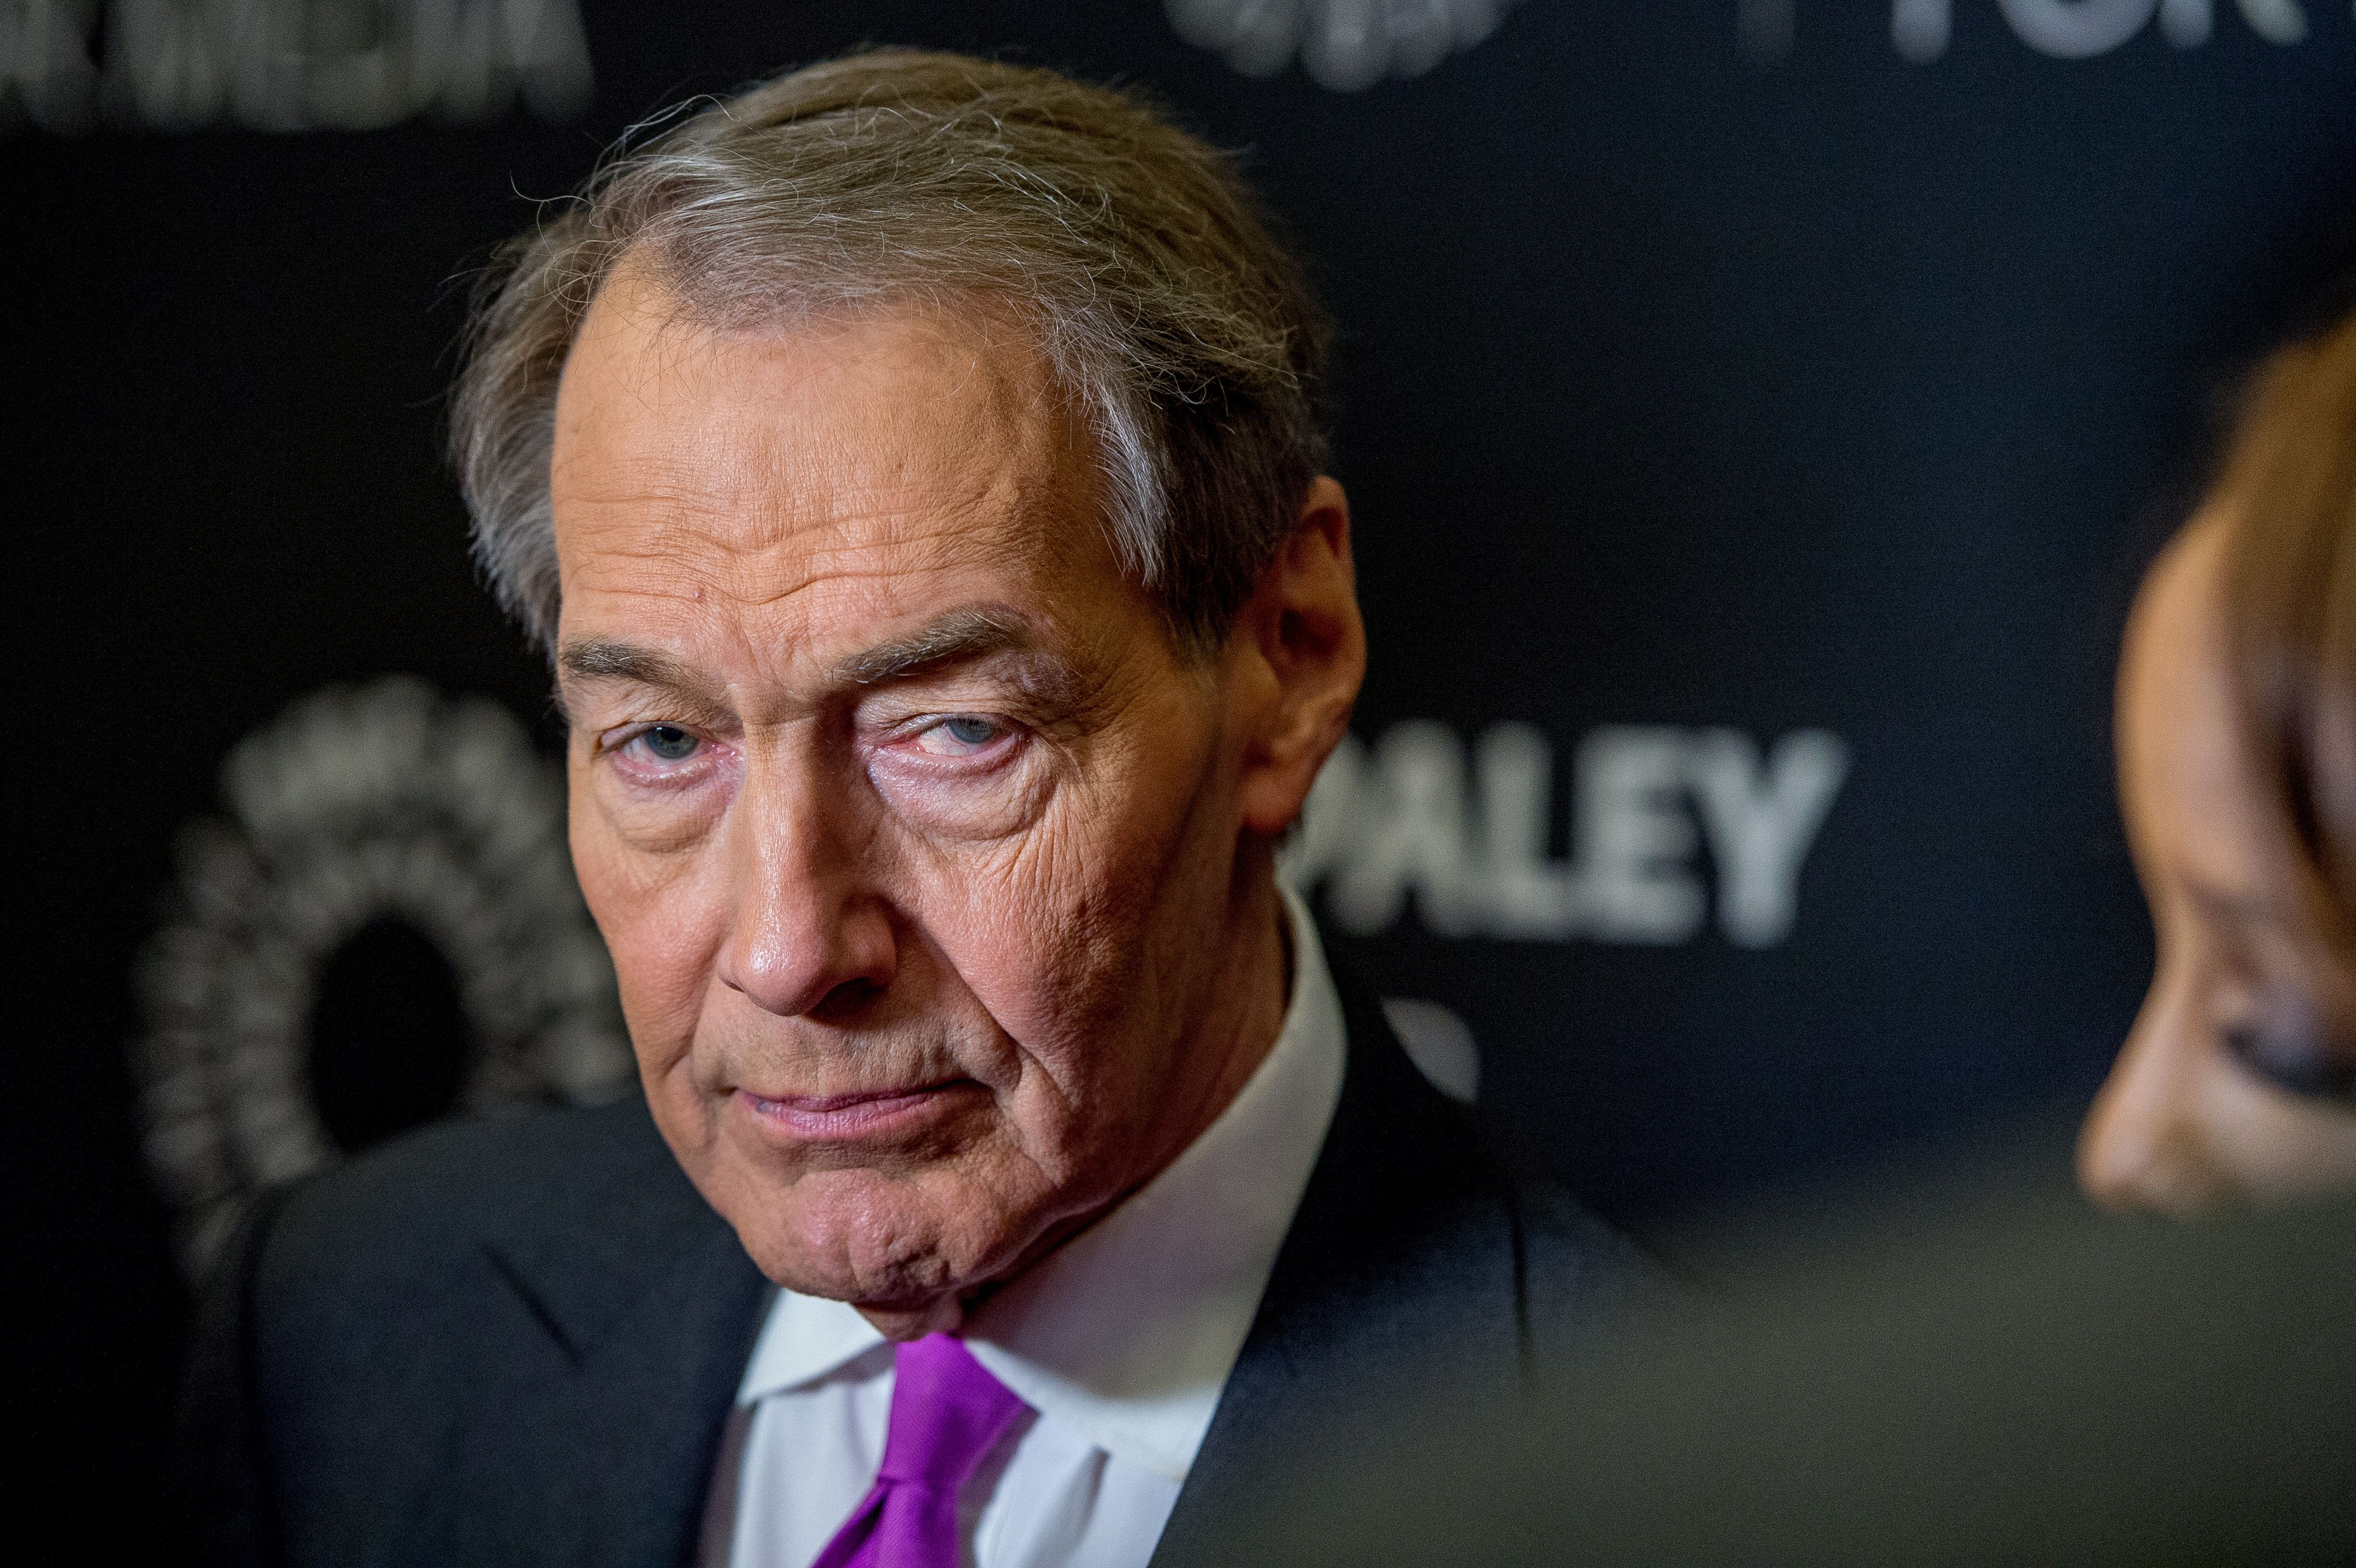 Former CBS News host Charlie Rose has been accused of sexually harassing nearly 40 women.